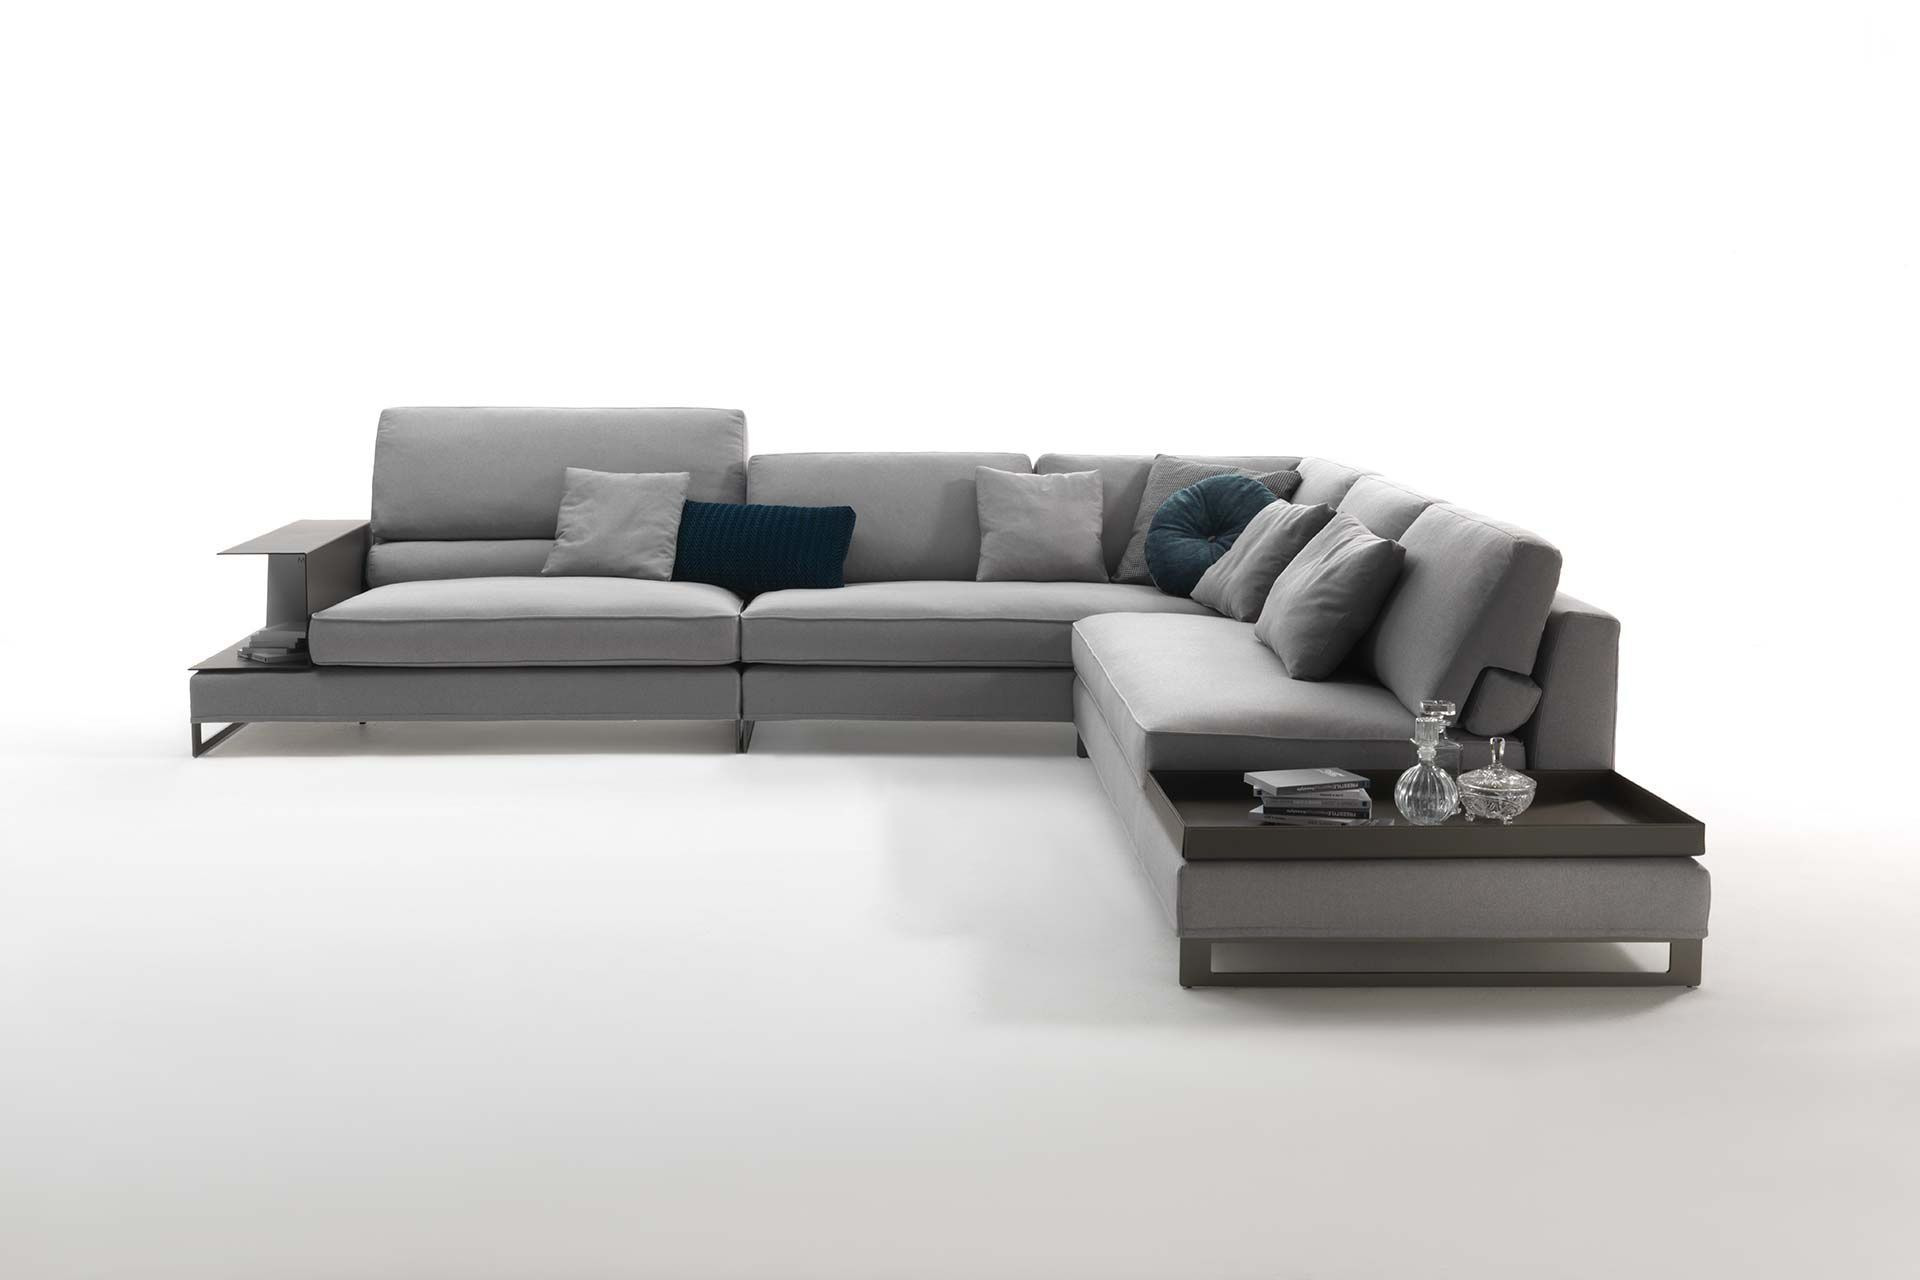 Magnificent Modular Sofa Contemporary Fabric Leather Davis Case Gmtry Best Dining Table And Chair Ideas Images Gmtryco